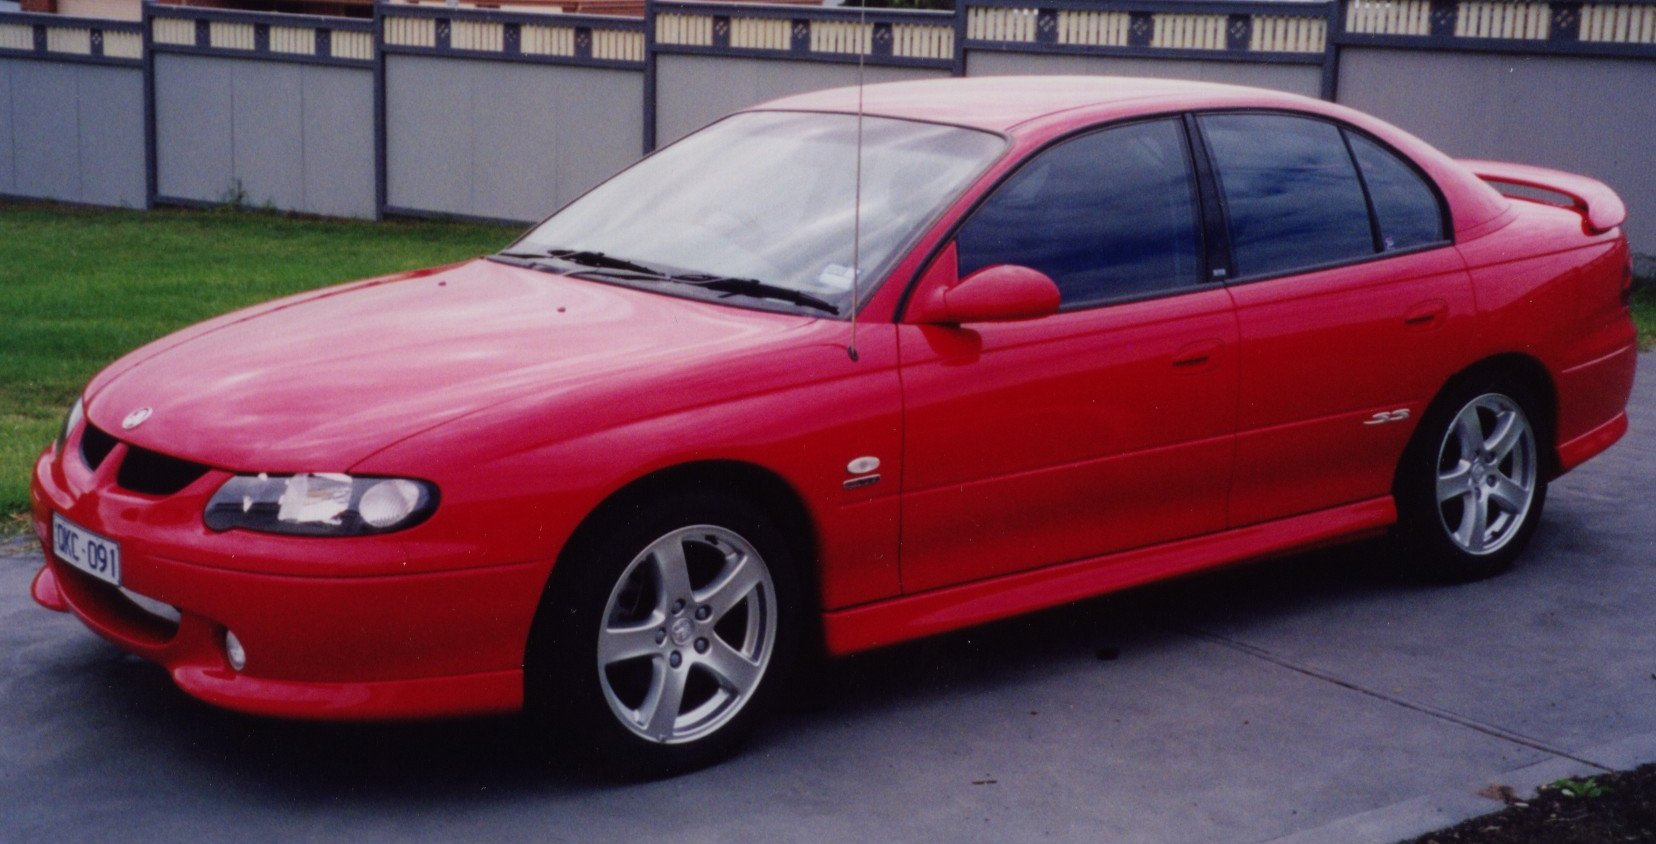 2000 VX Holden Commodore SS